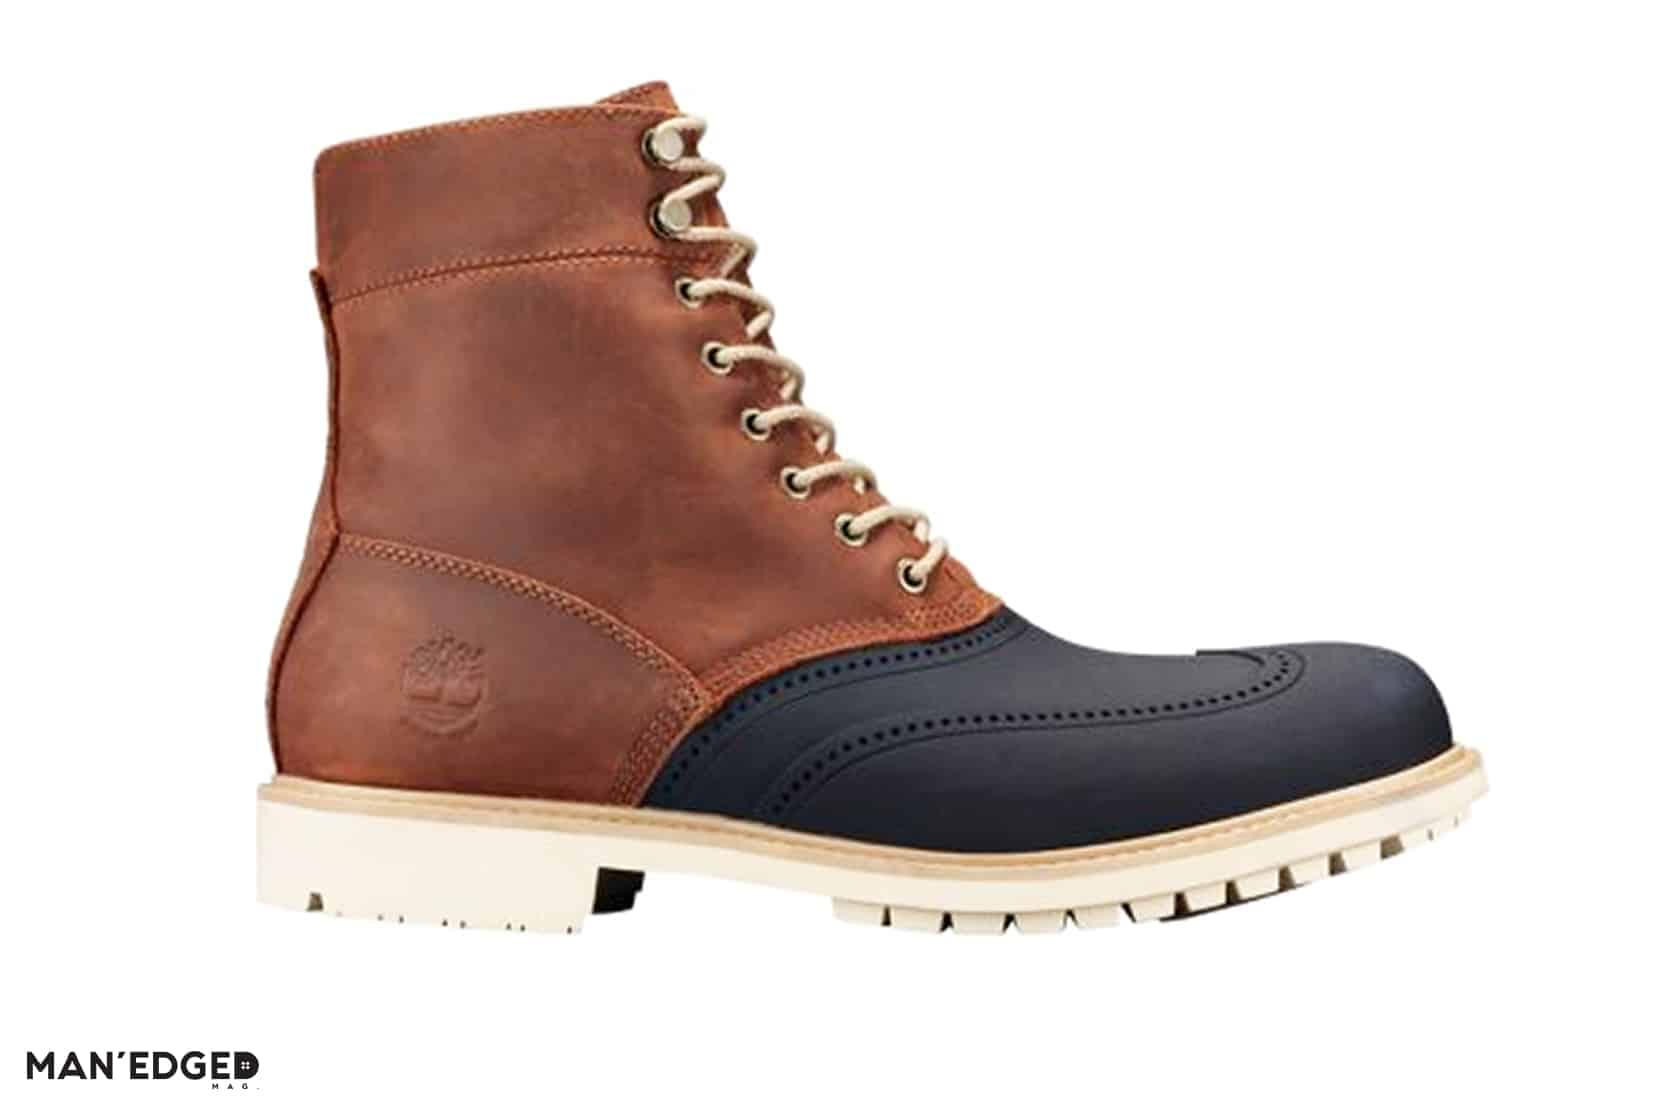 The Outdoorsman Gift Guide featuring Timberland Stormbuck Men's Boots